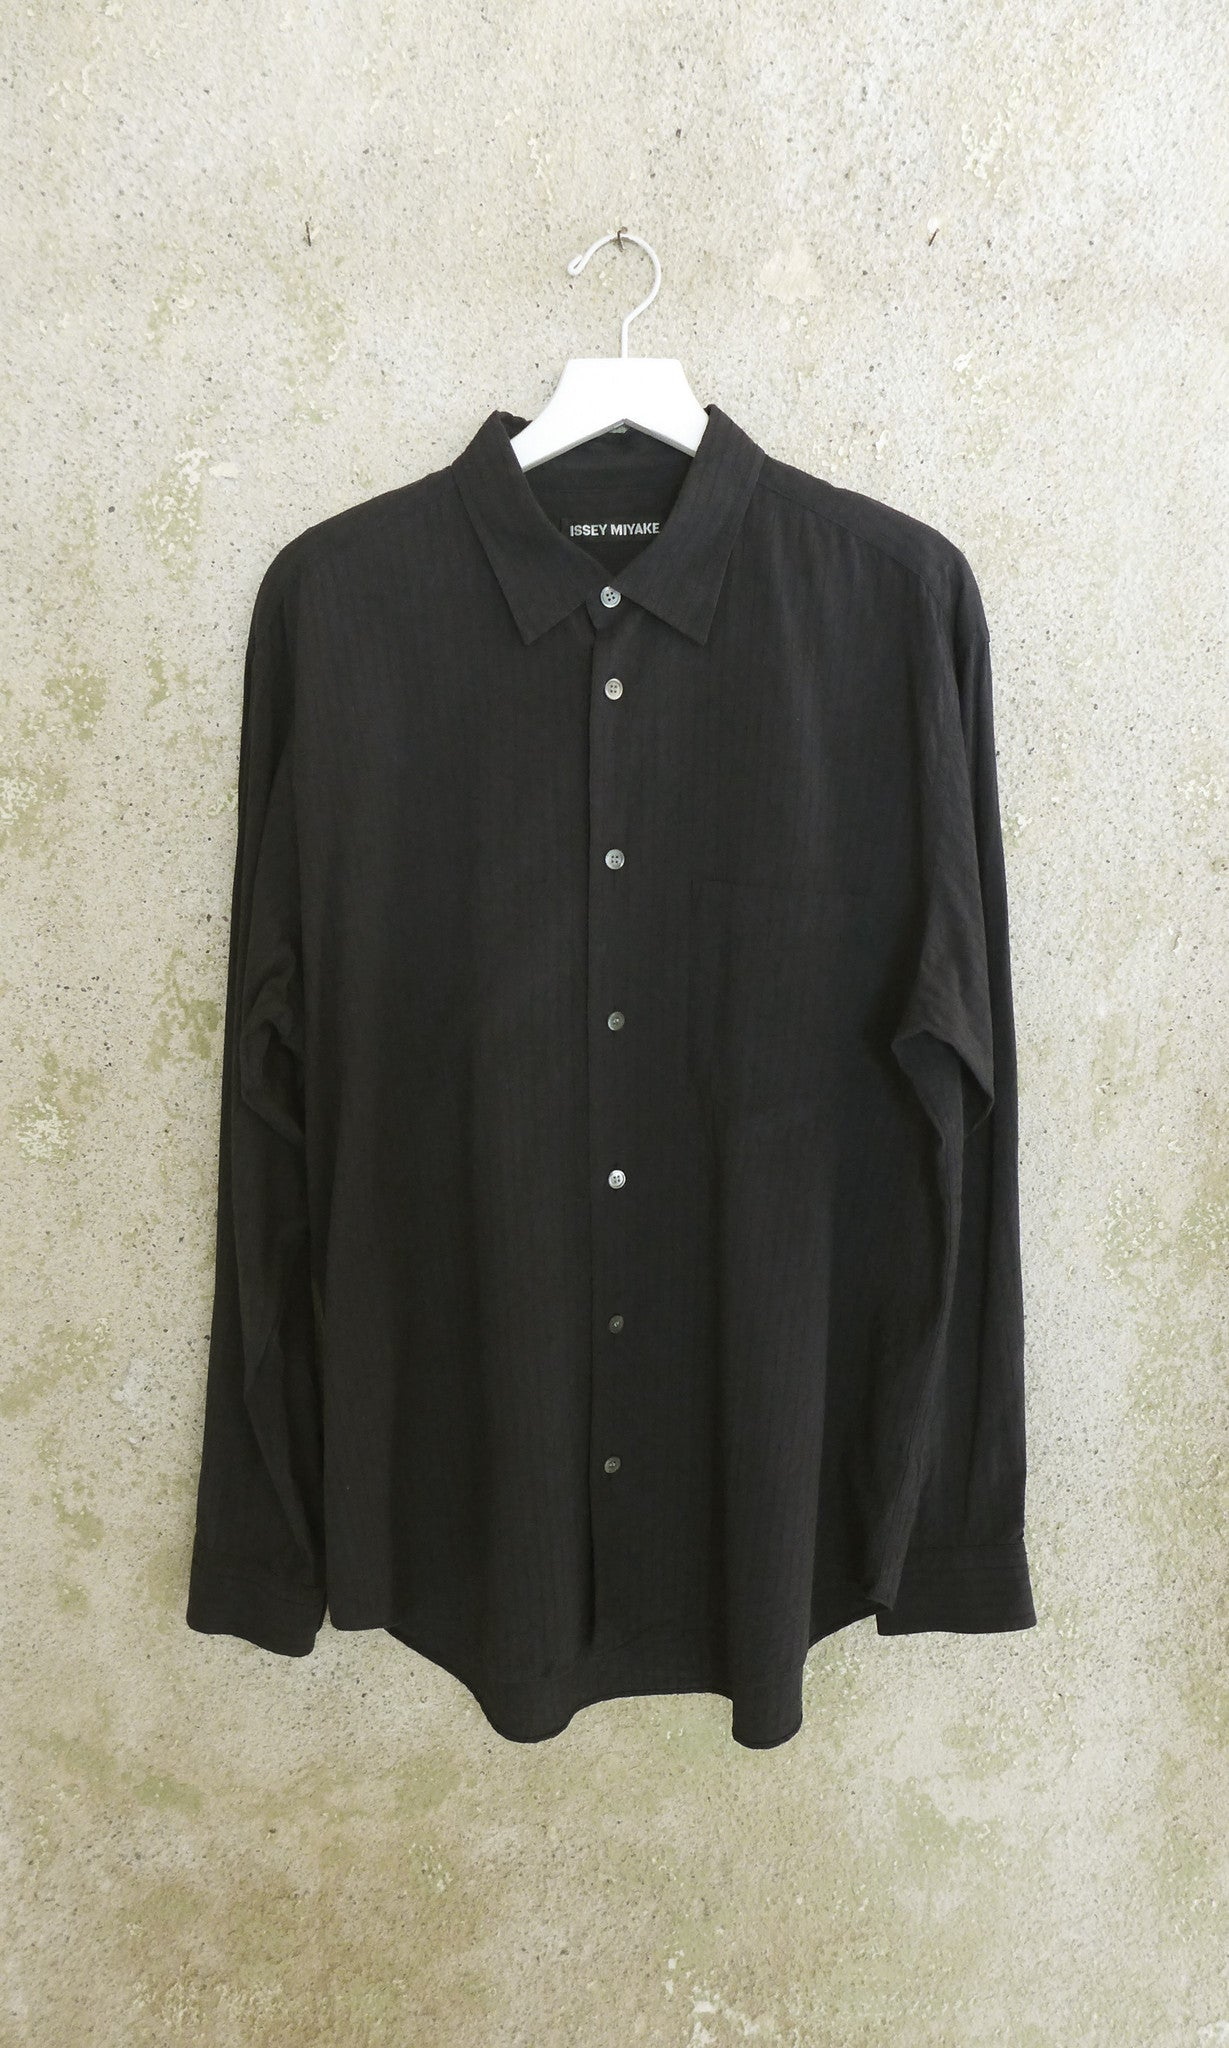 L/S Black Issey Miyake Collared Button Up - MENS